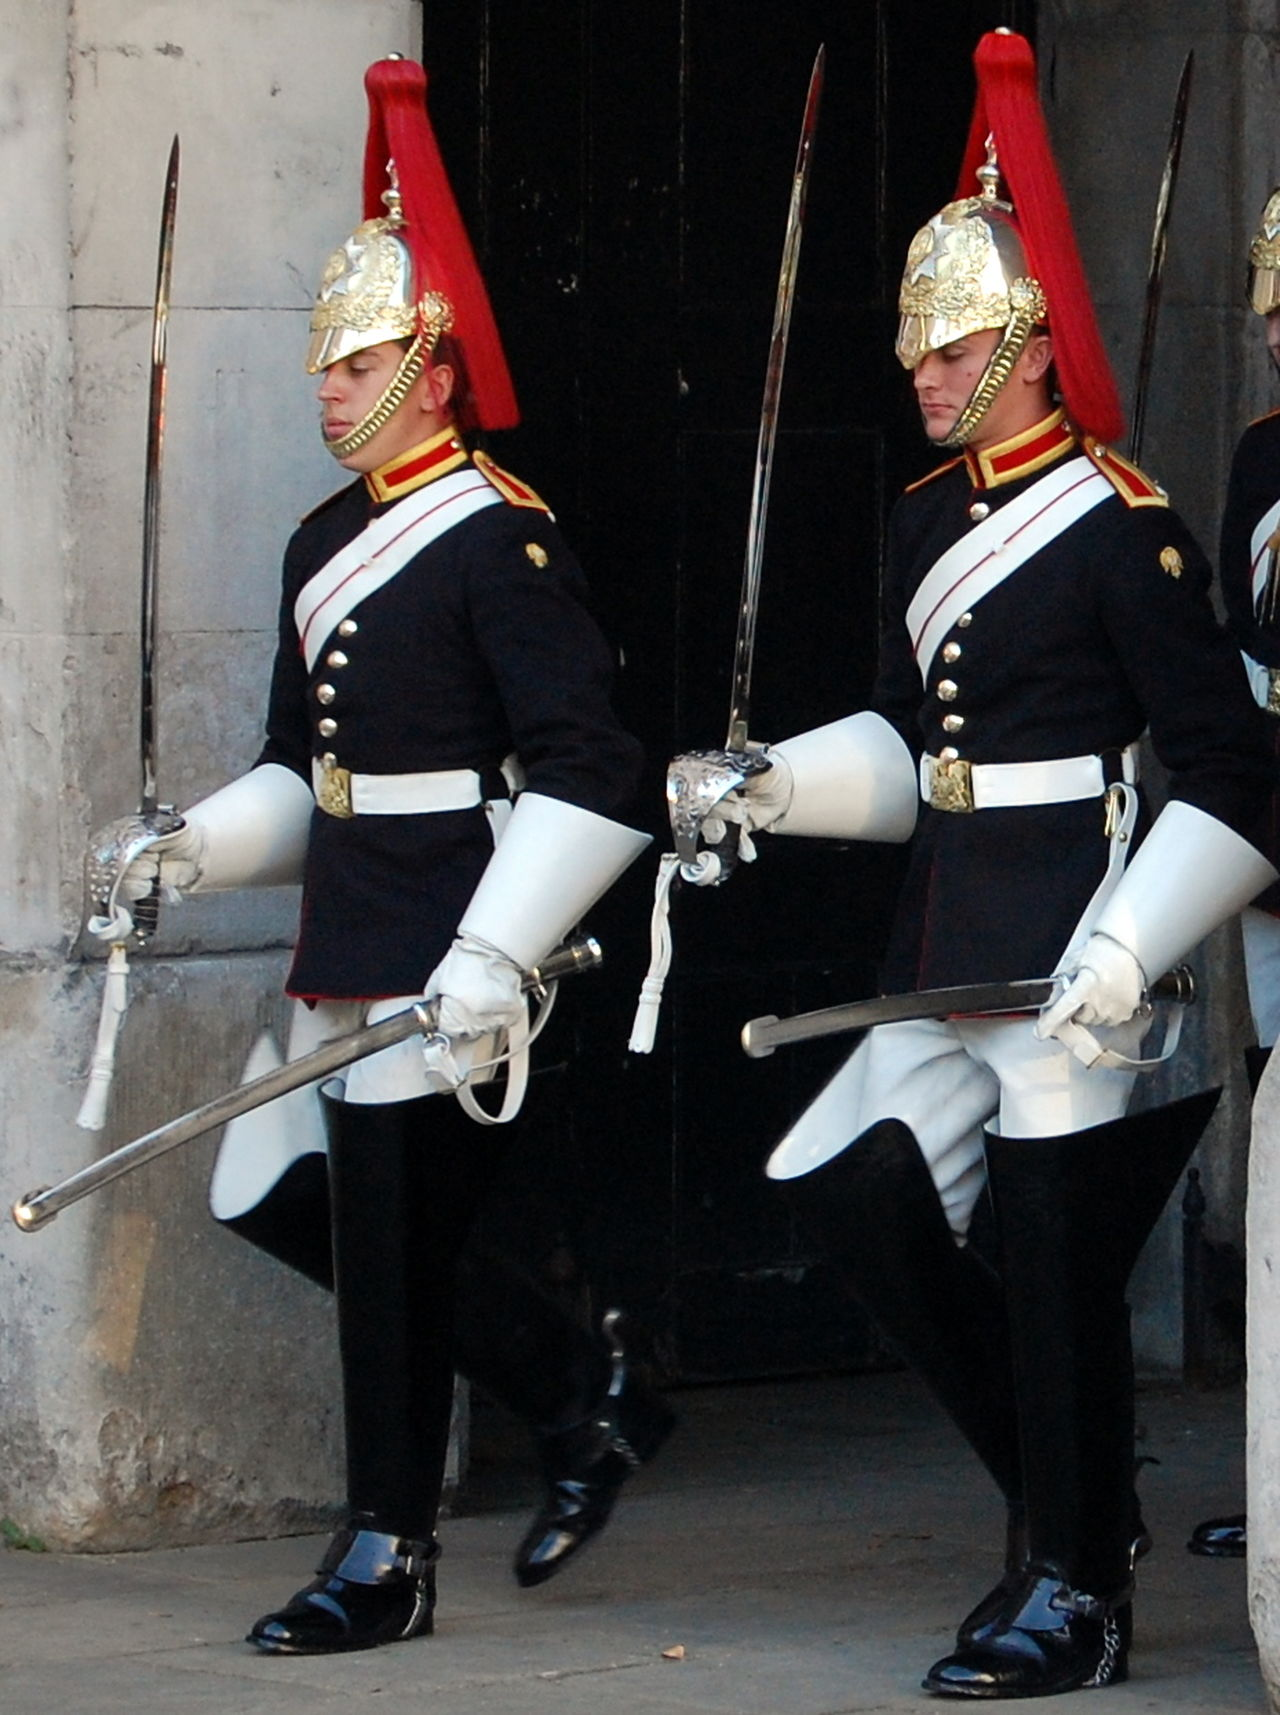 Armed Forces Army Army Helmet Army Soldier Day Full Length Headwear Helmet History London Travel Men Military Military Parade Military Uniform Occupation Outdoors People Protection Real People Shield Standing Togetherness Two Soldiers Uniform Weapon